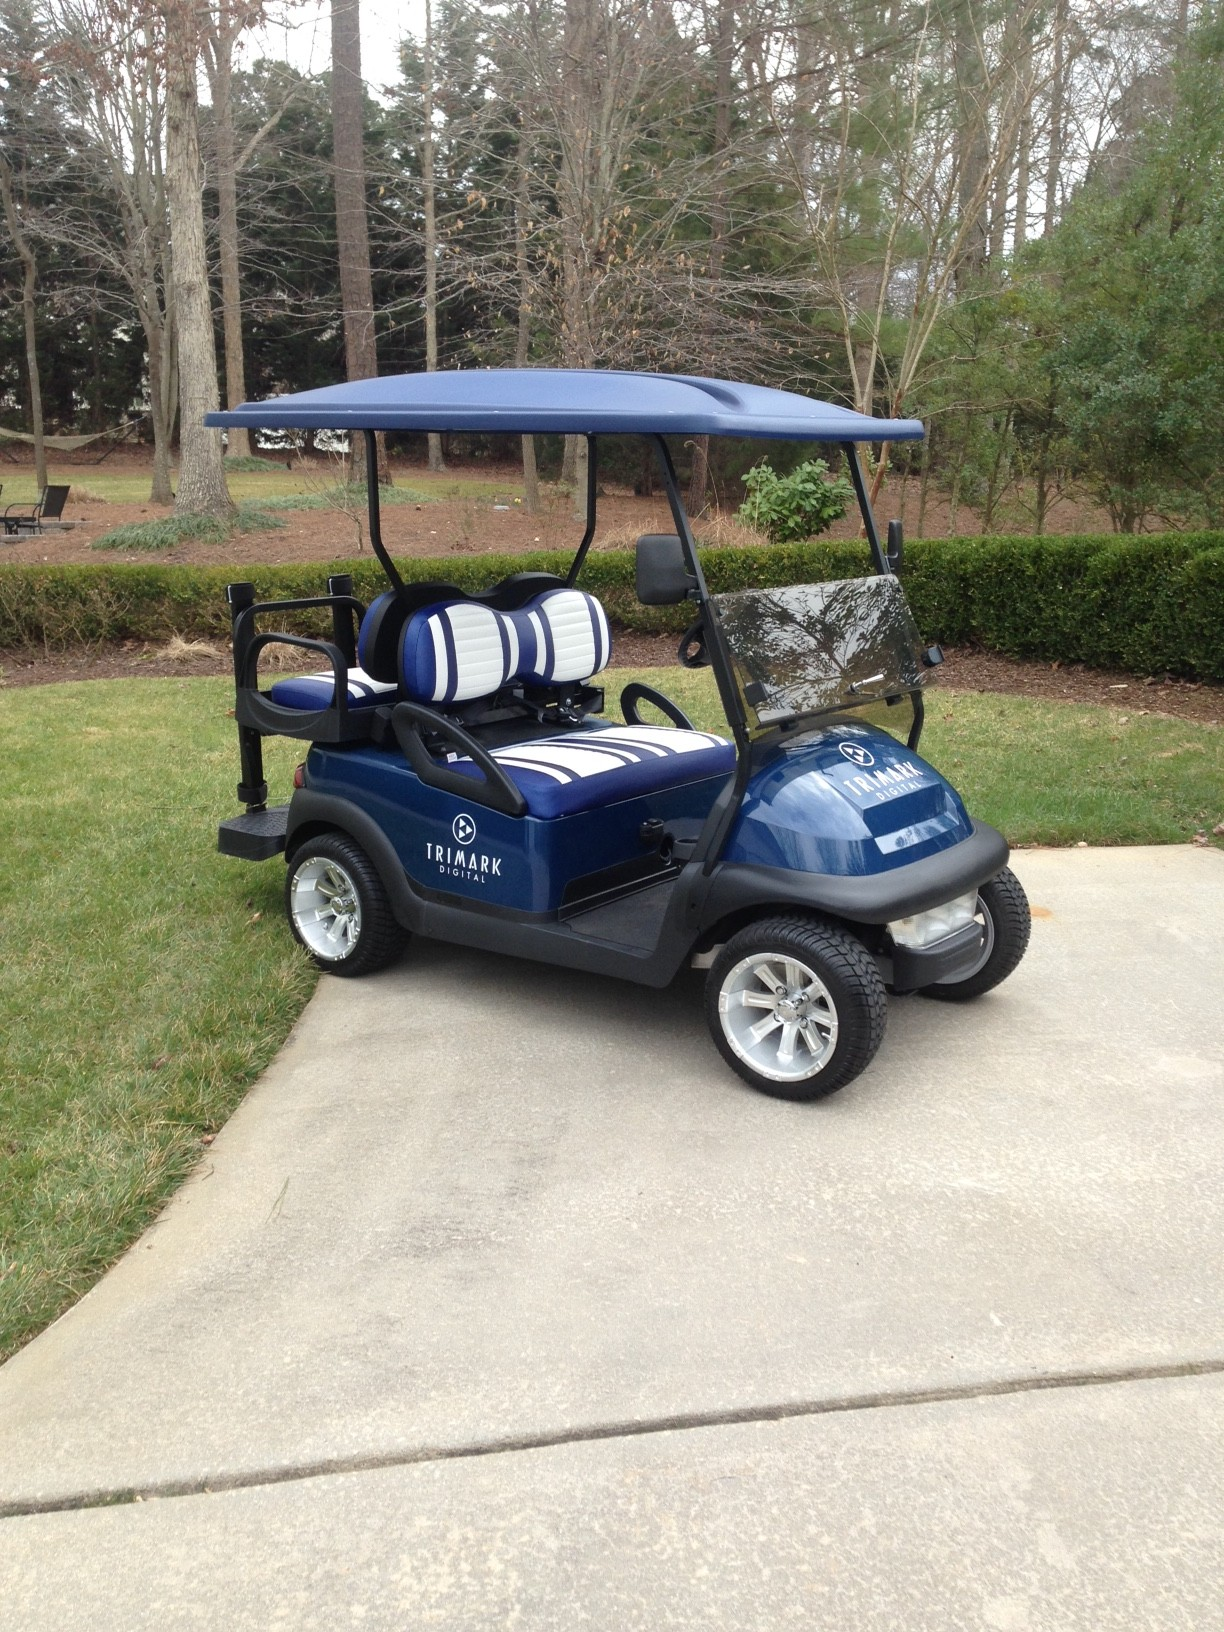 Commercial Golf Cart Gallery - Street Legal Carts | Cary ...